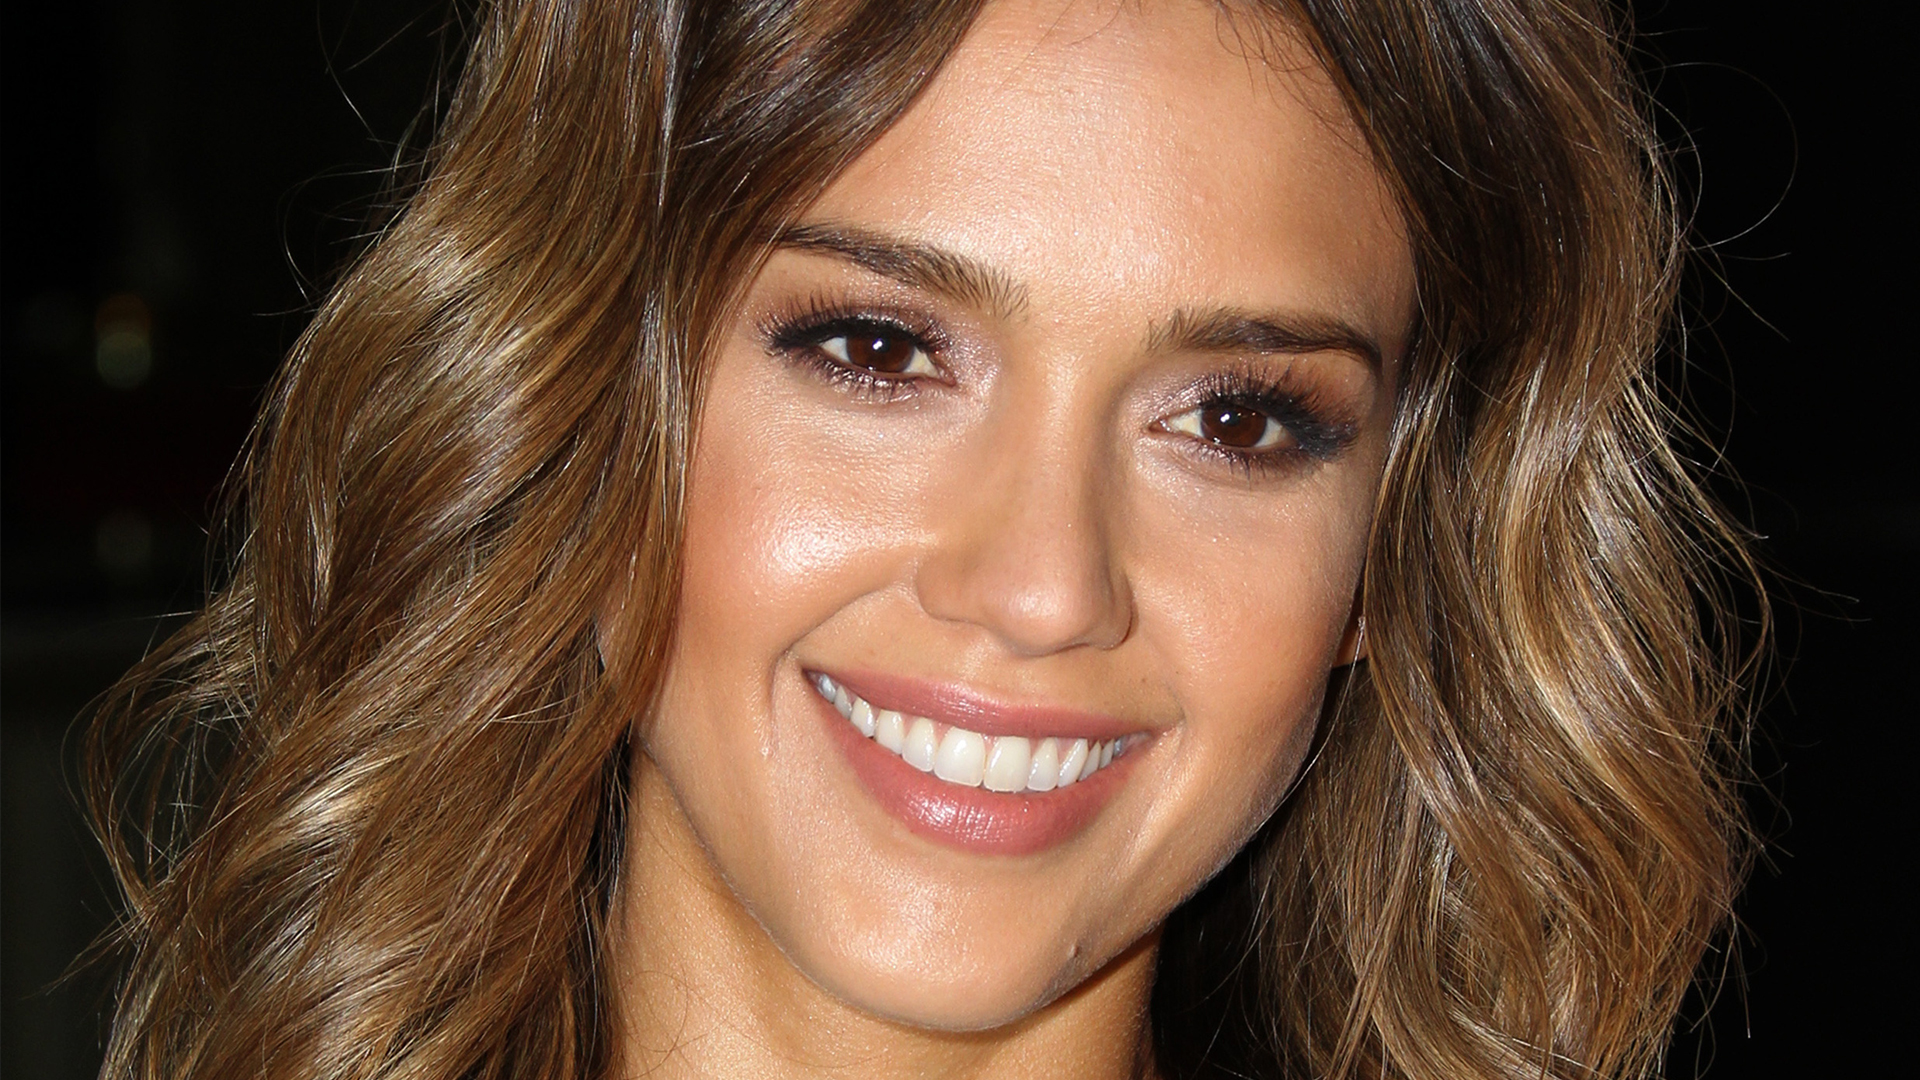 Jessica Alba has an oval shaped face | Sheknows.ca